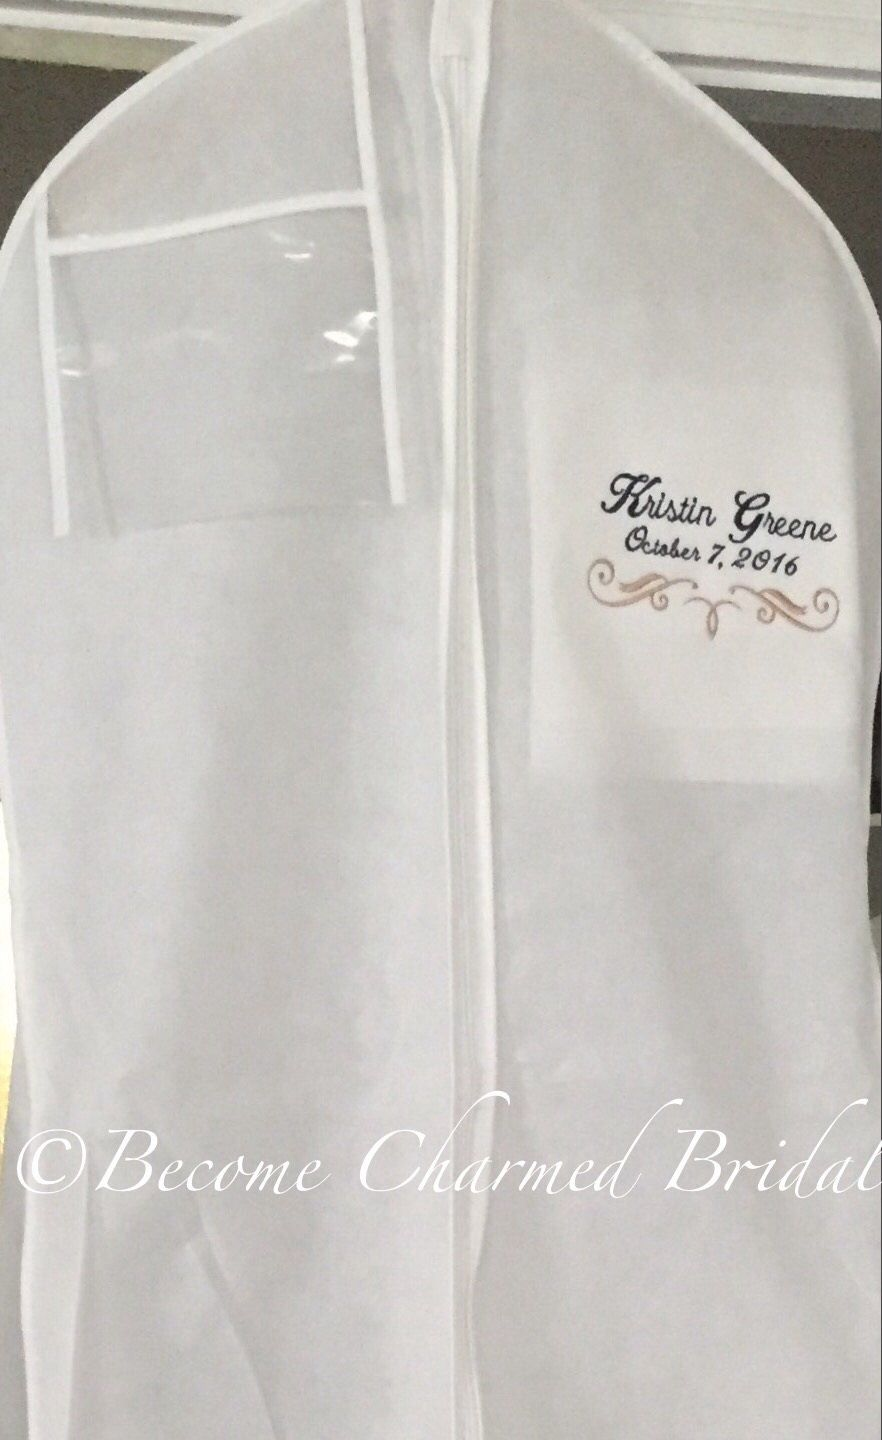 72 Embroidered Breathable Wedding Gown Dress Garment Bag Etsy Dress Garment Bags Personalize Bag Wedding Gown Preservation